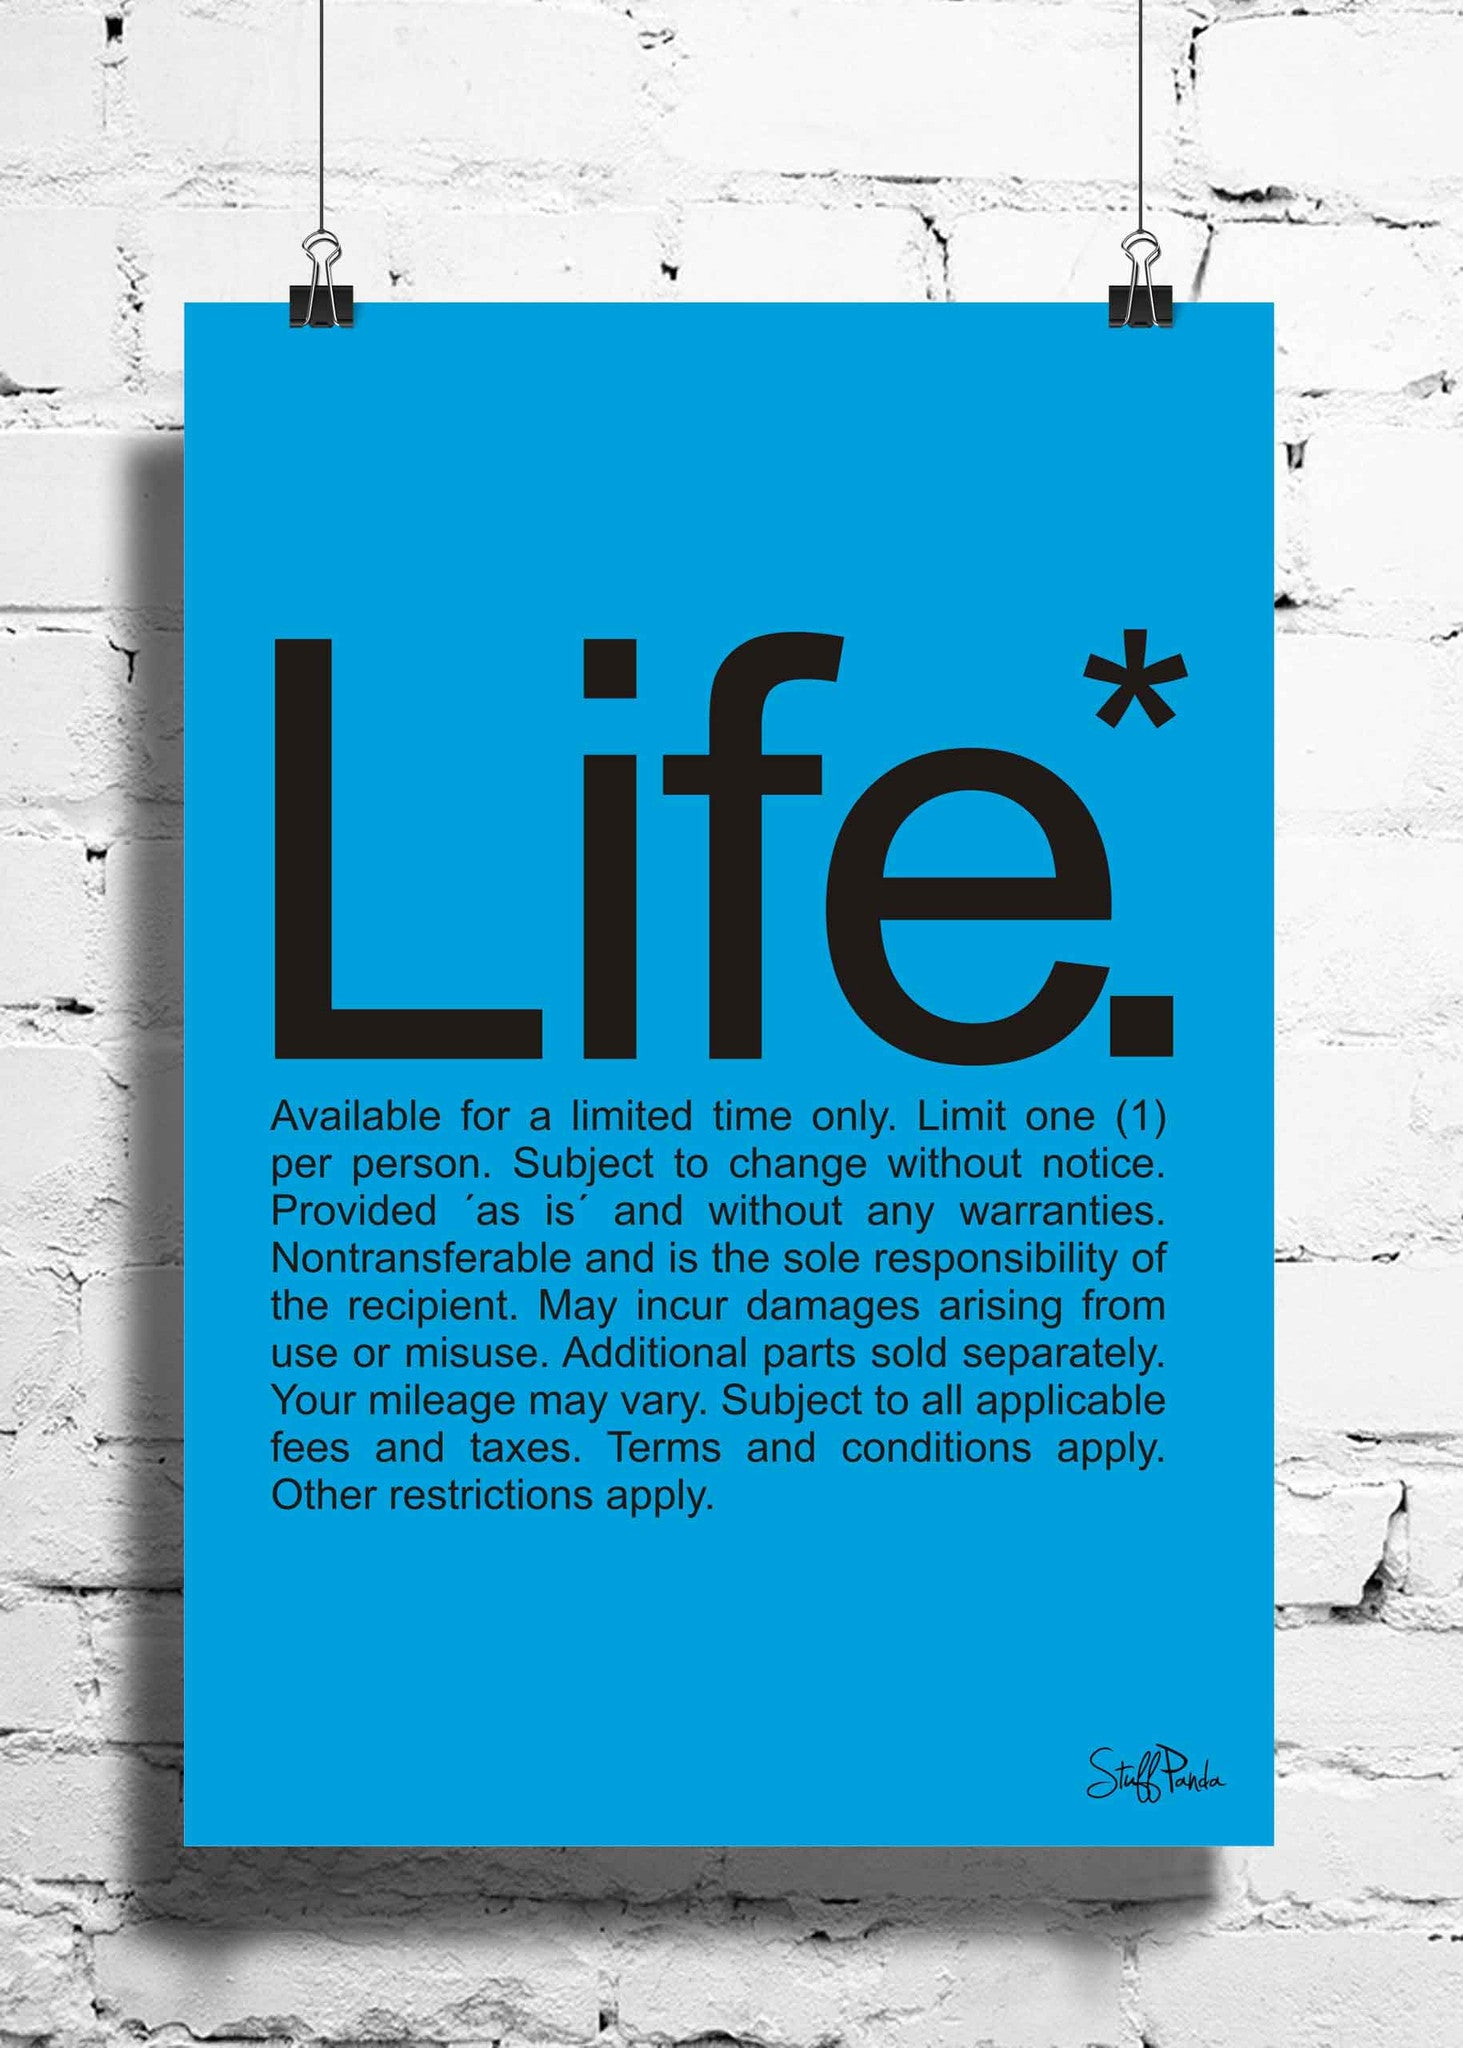 Cool Funky funny Life fine prints wall posters, art prints, stickers decals Blue - stuffpanda - 1